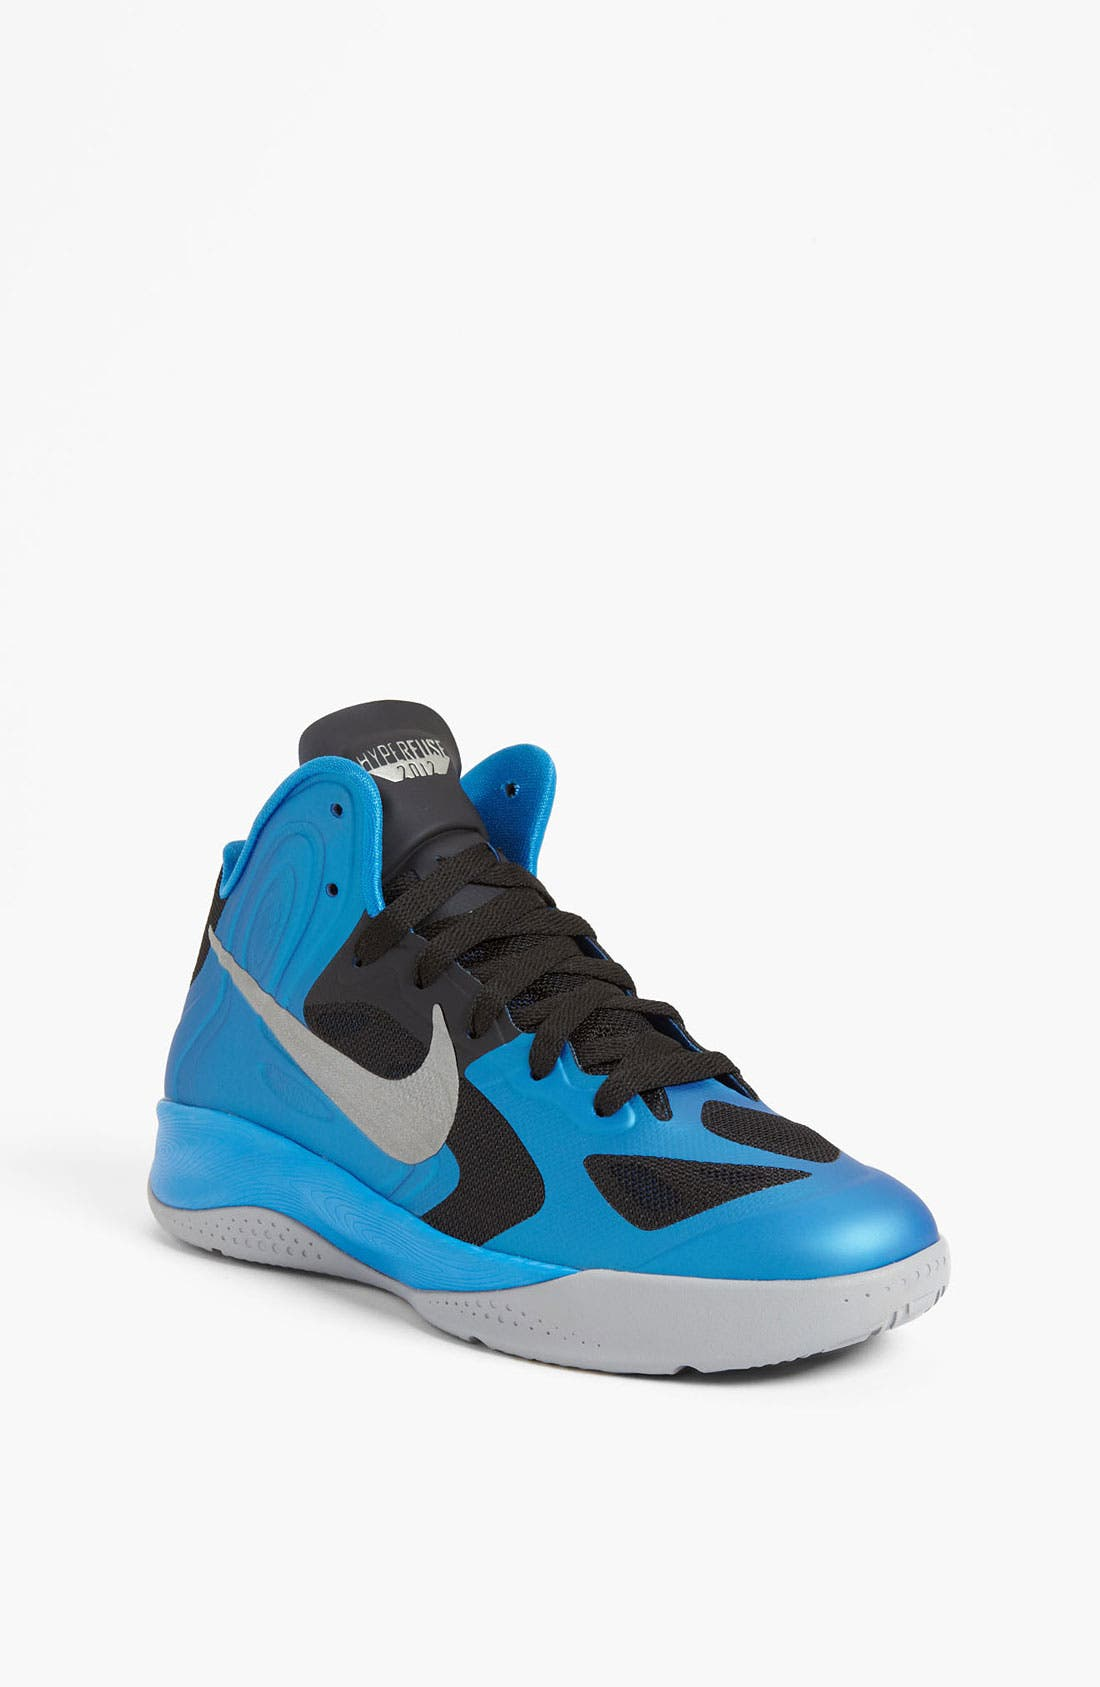 Main Image - Nike 'Hyperfuse 2012' Basketball Shoe (Big Kid)